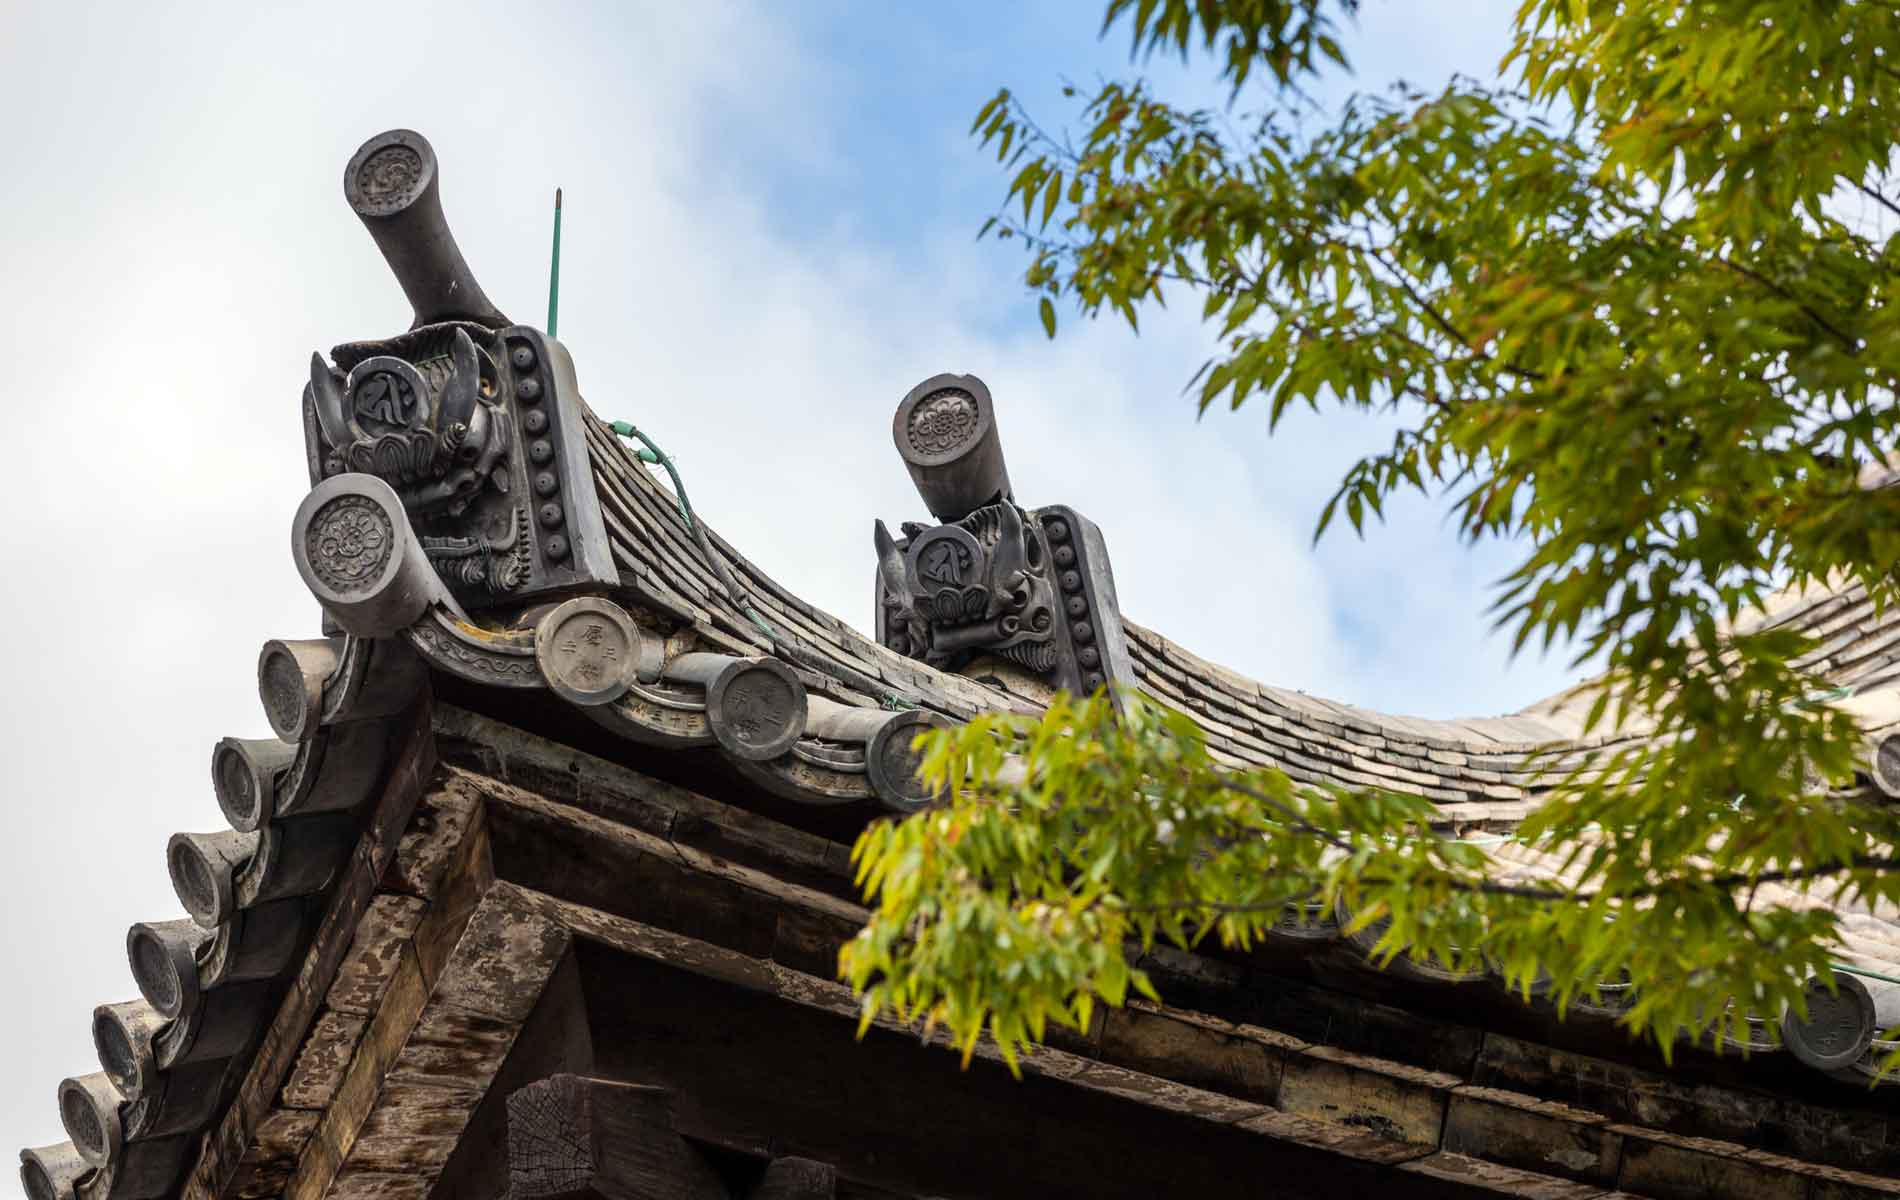 Detail of the Main Hall of Sanjusangendo Buddhist Temple in Kyoto, Japan